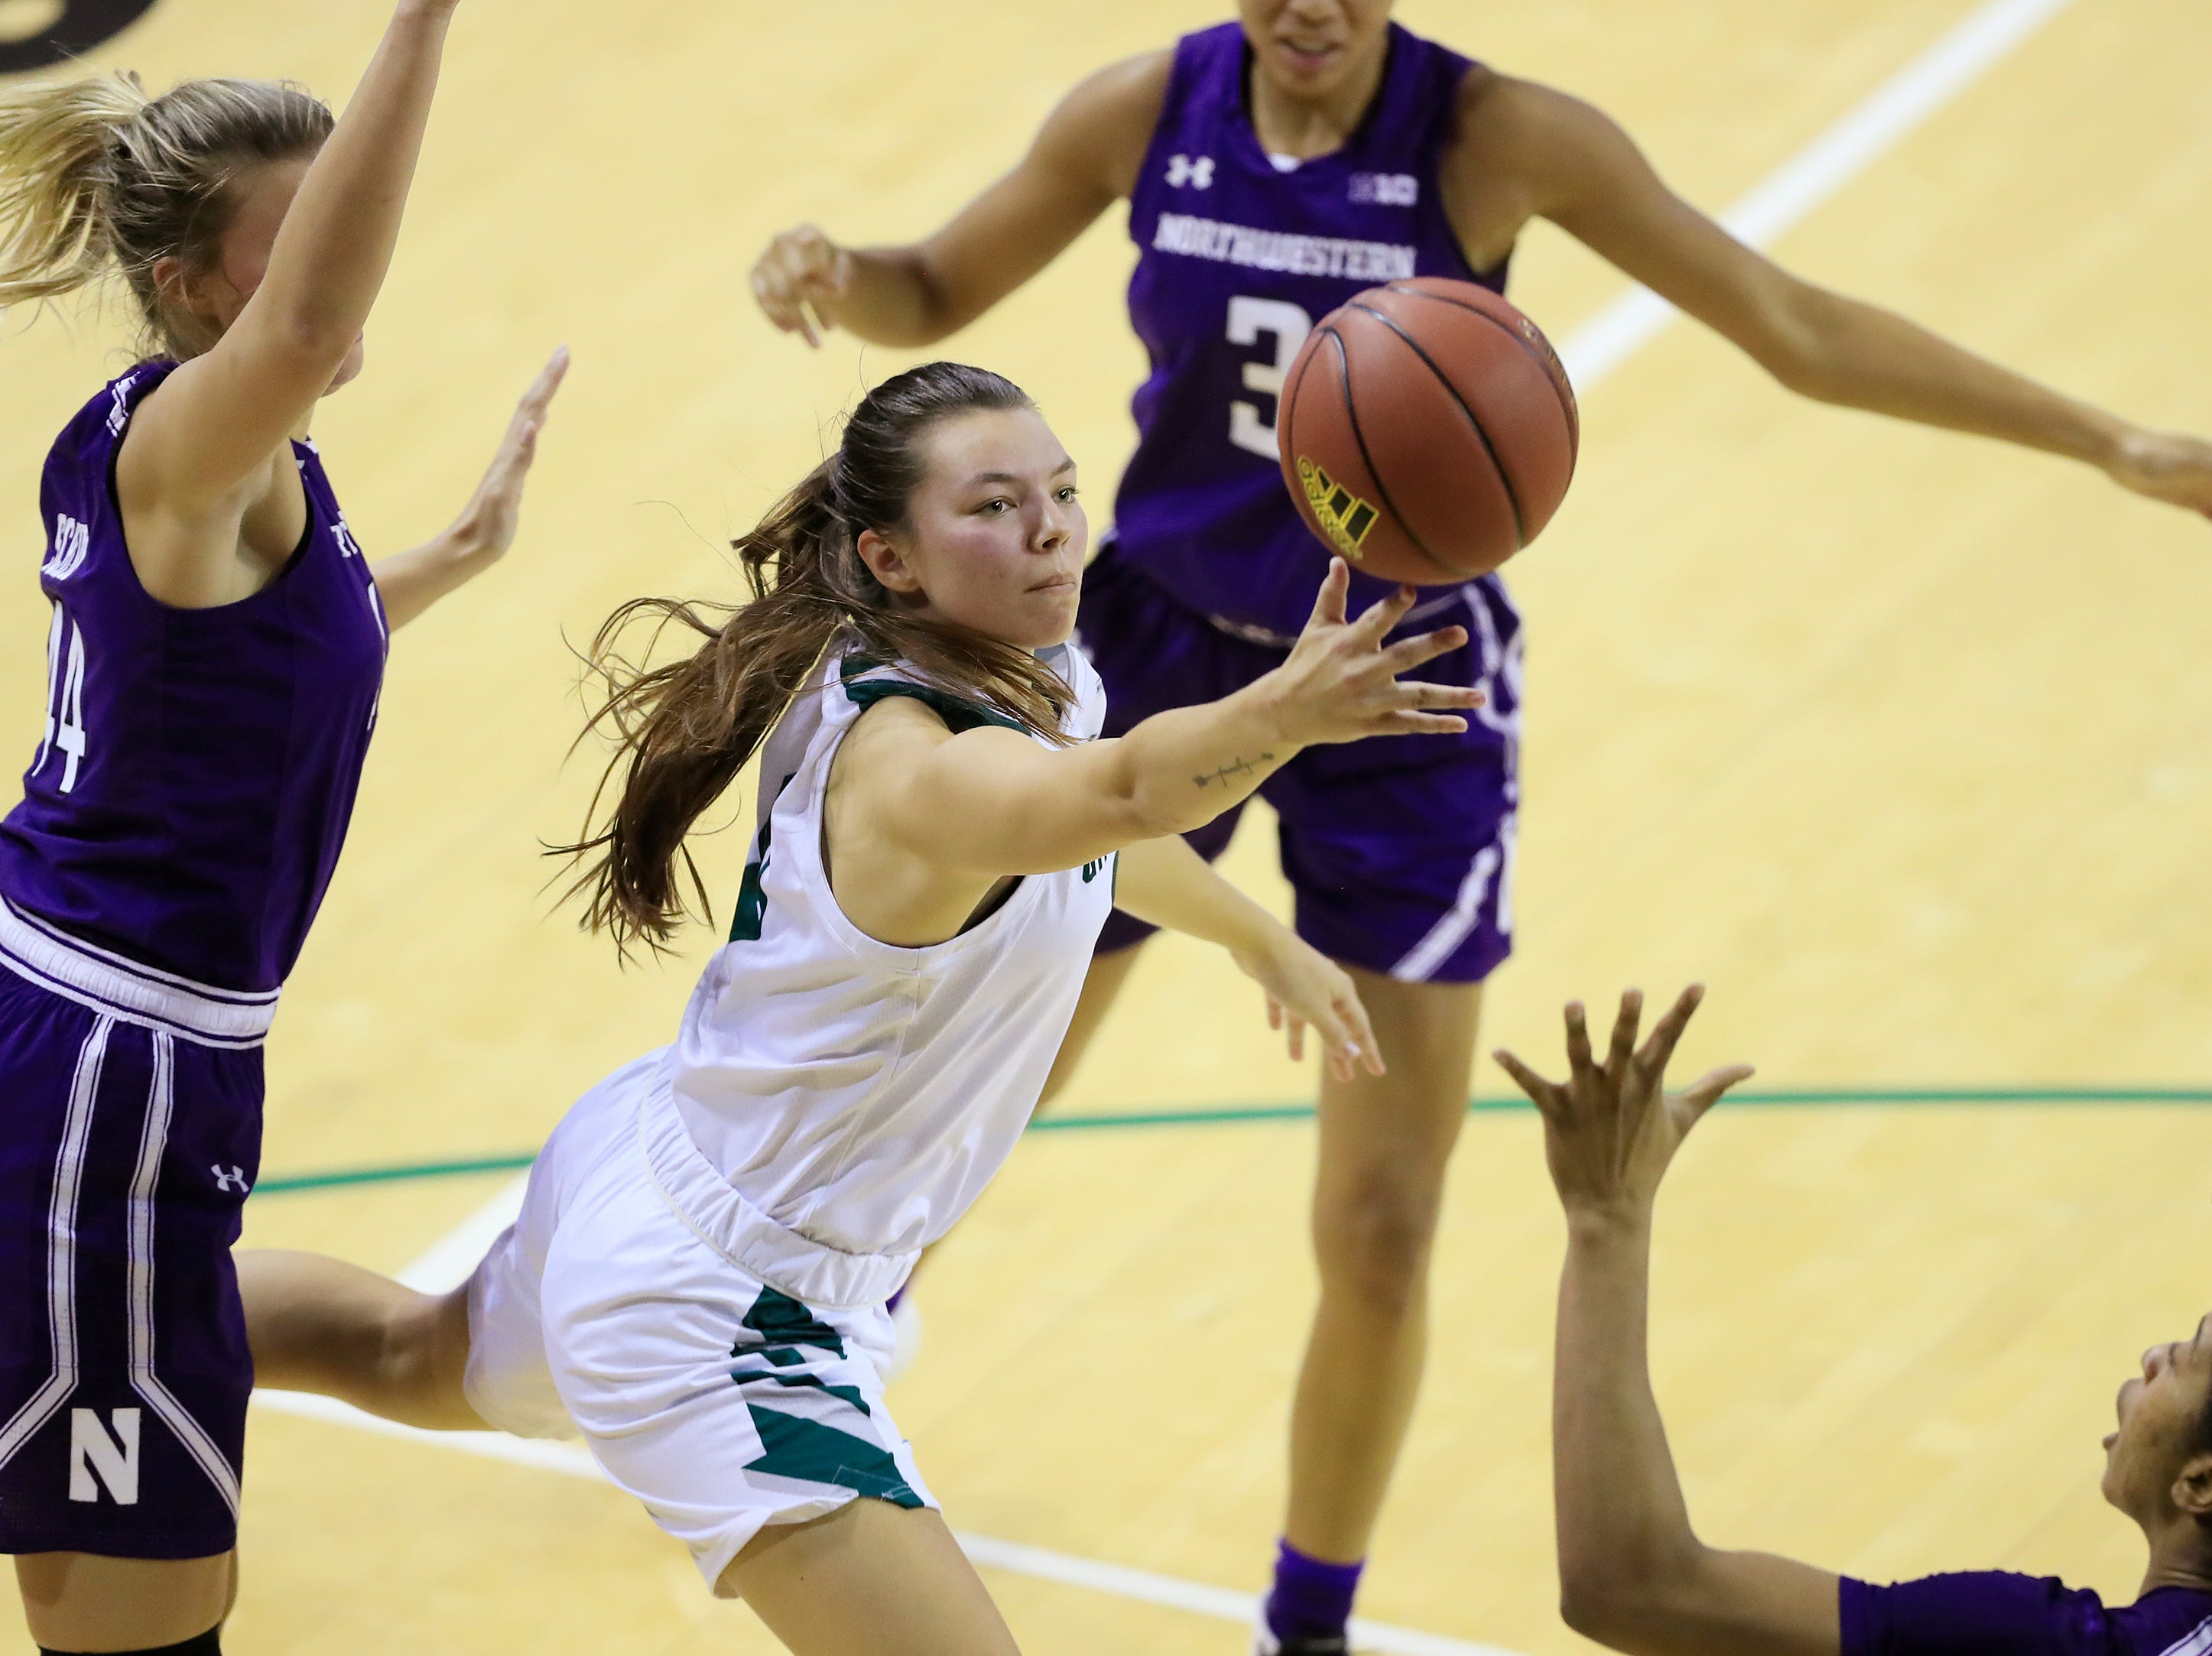 Green Bay Phoenix guard Hailey Oskey (0) shoots a layup against the Northwestern Wildcats in a women's NCAA basketball game at the Kress Center on Tuesday, November 6, 2018 in Green Bay, Wis.